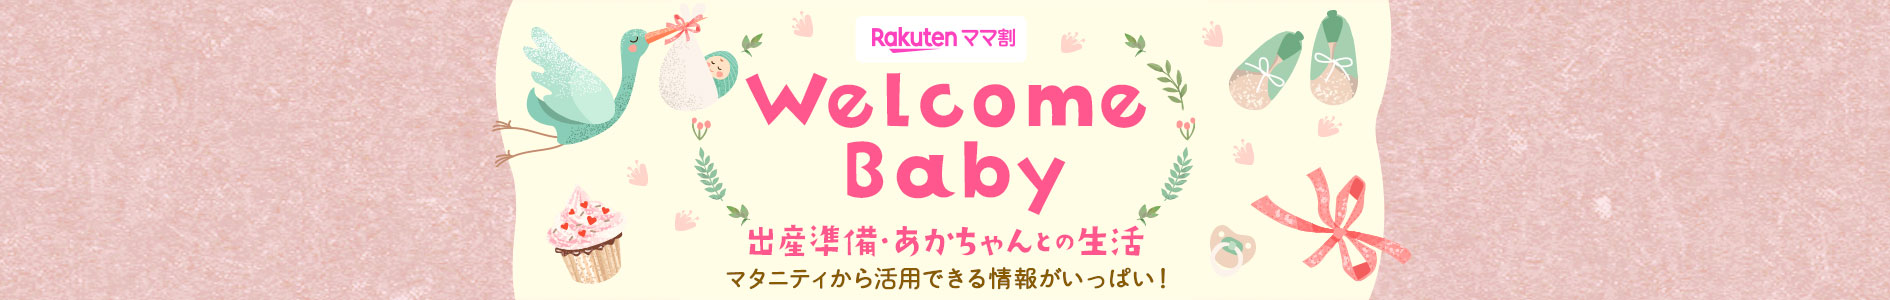 Welcome Baby 出産準備・あかちゃんとの生活